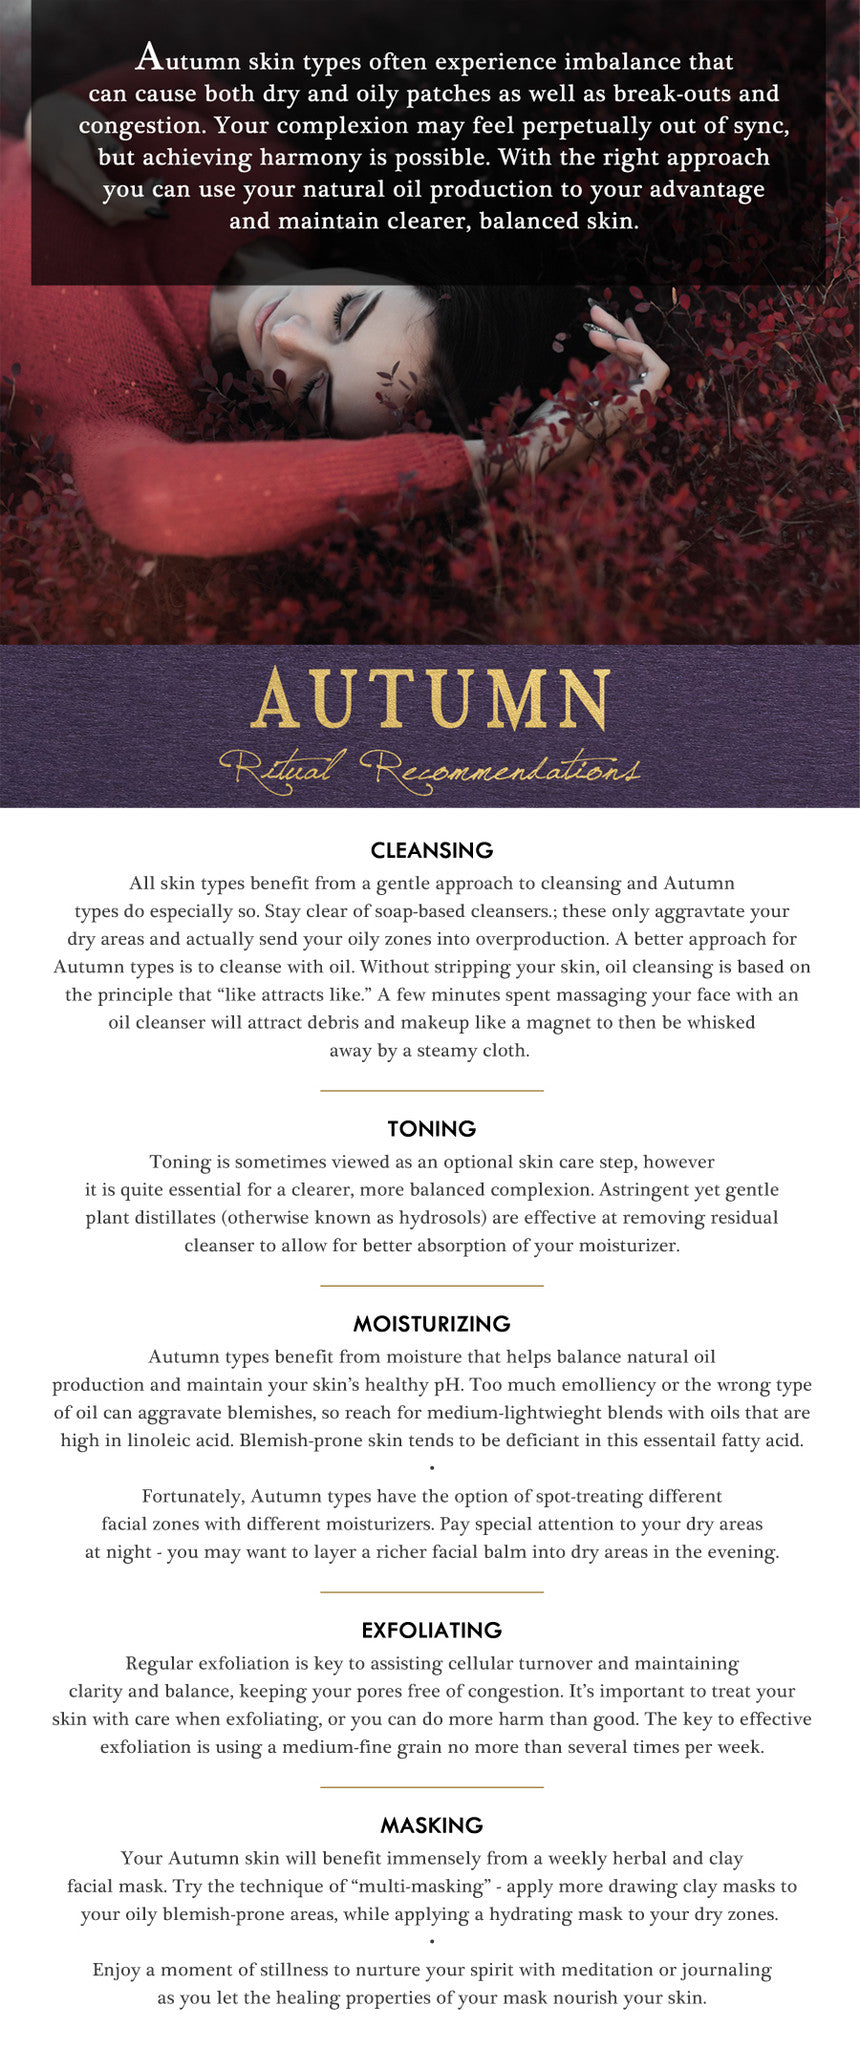 autumn typology skin care report